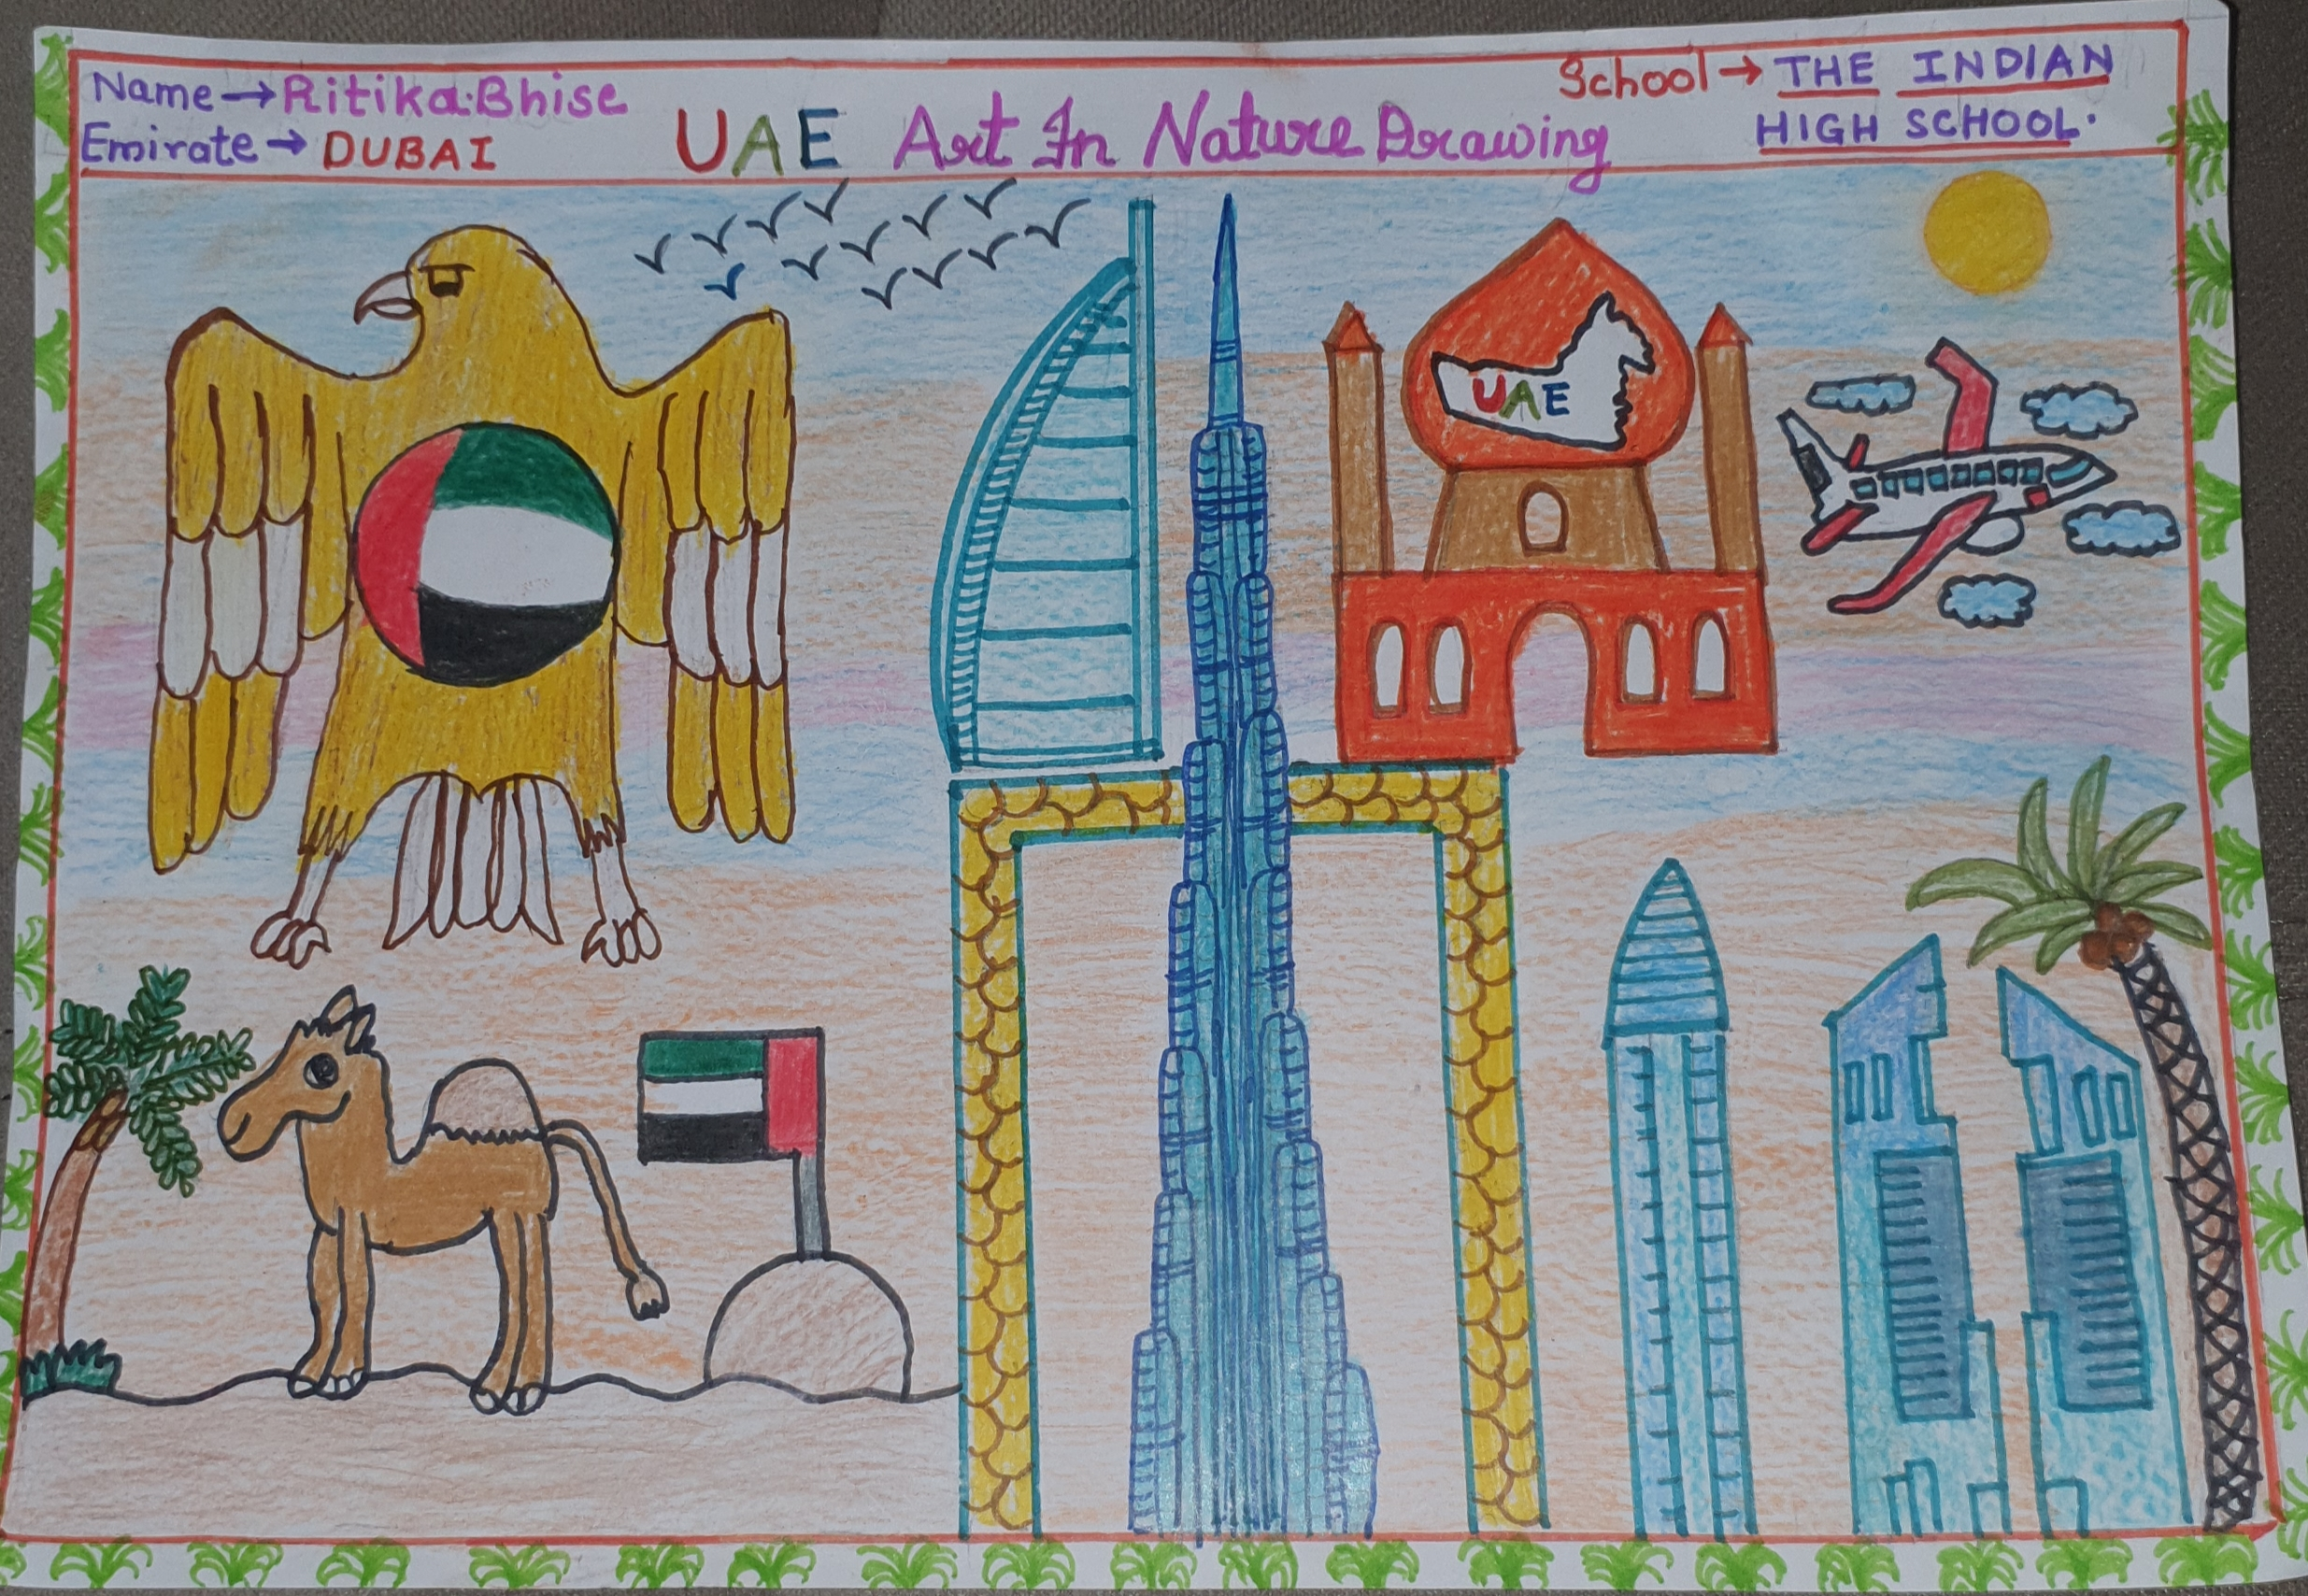 UAE Art in Nature by Ritika Bhise